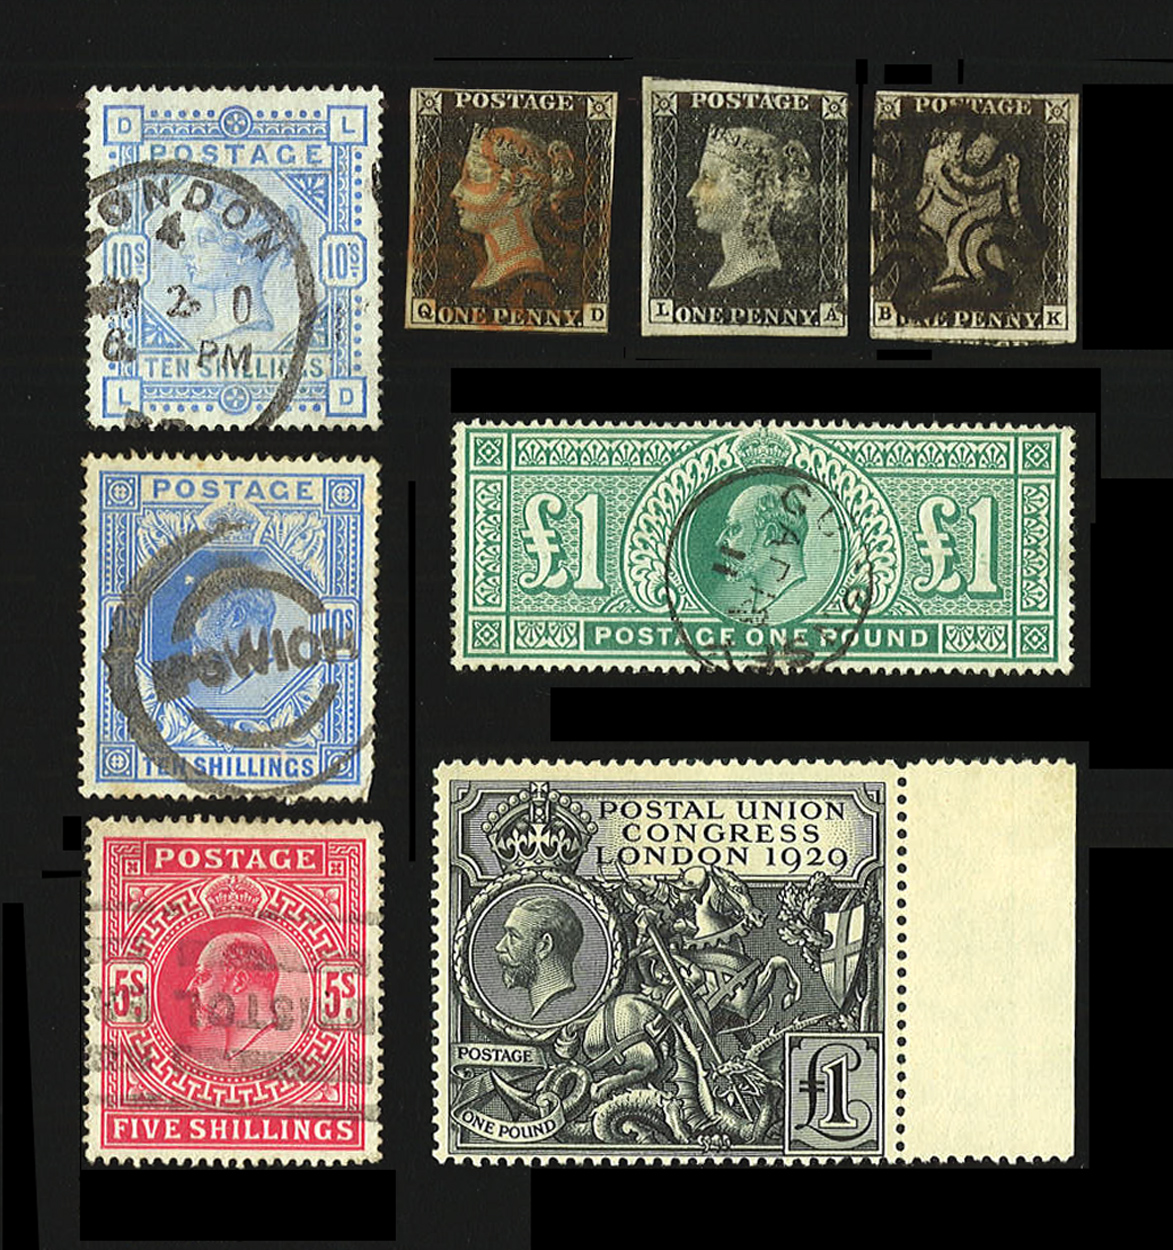 Four Windsor stamp albums containing Great Britain stamps